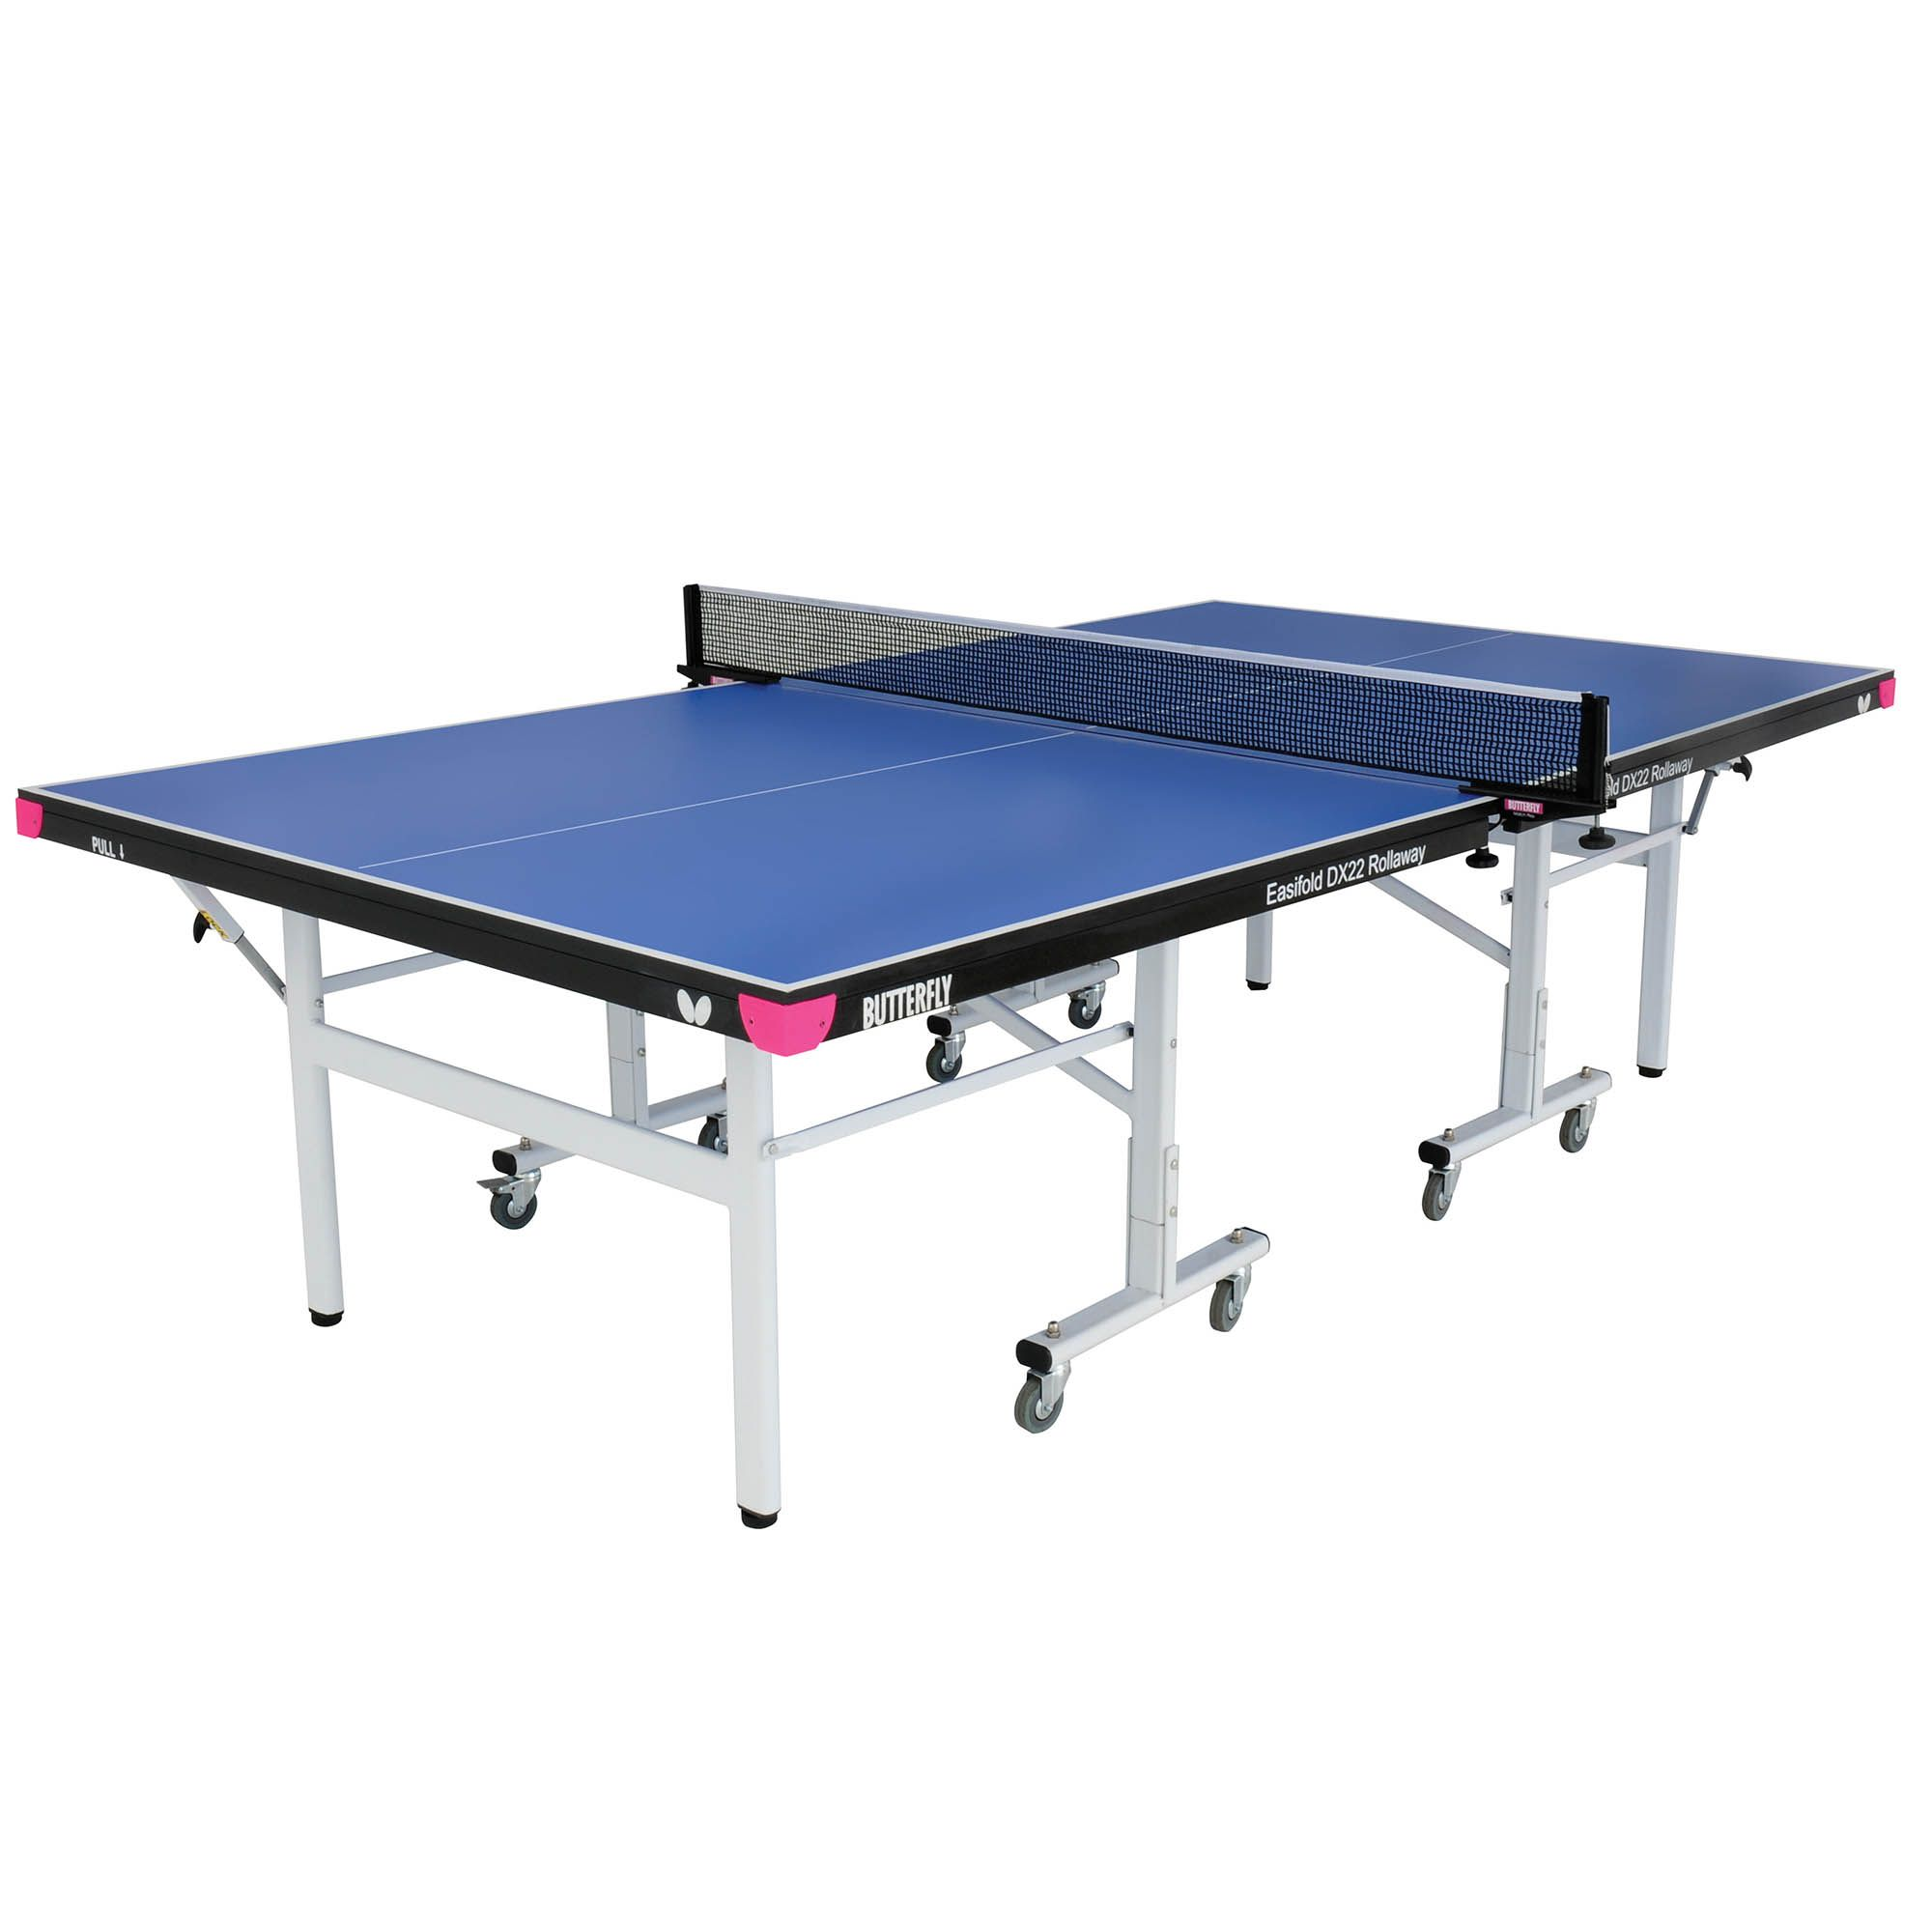 Butterfly easifold dx22 indoor rollaway table tennis table - Butterfly tennis de table ...